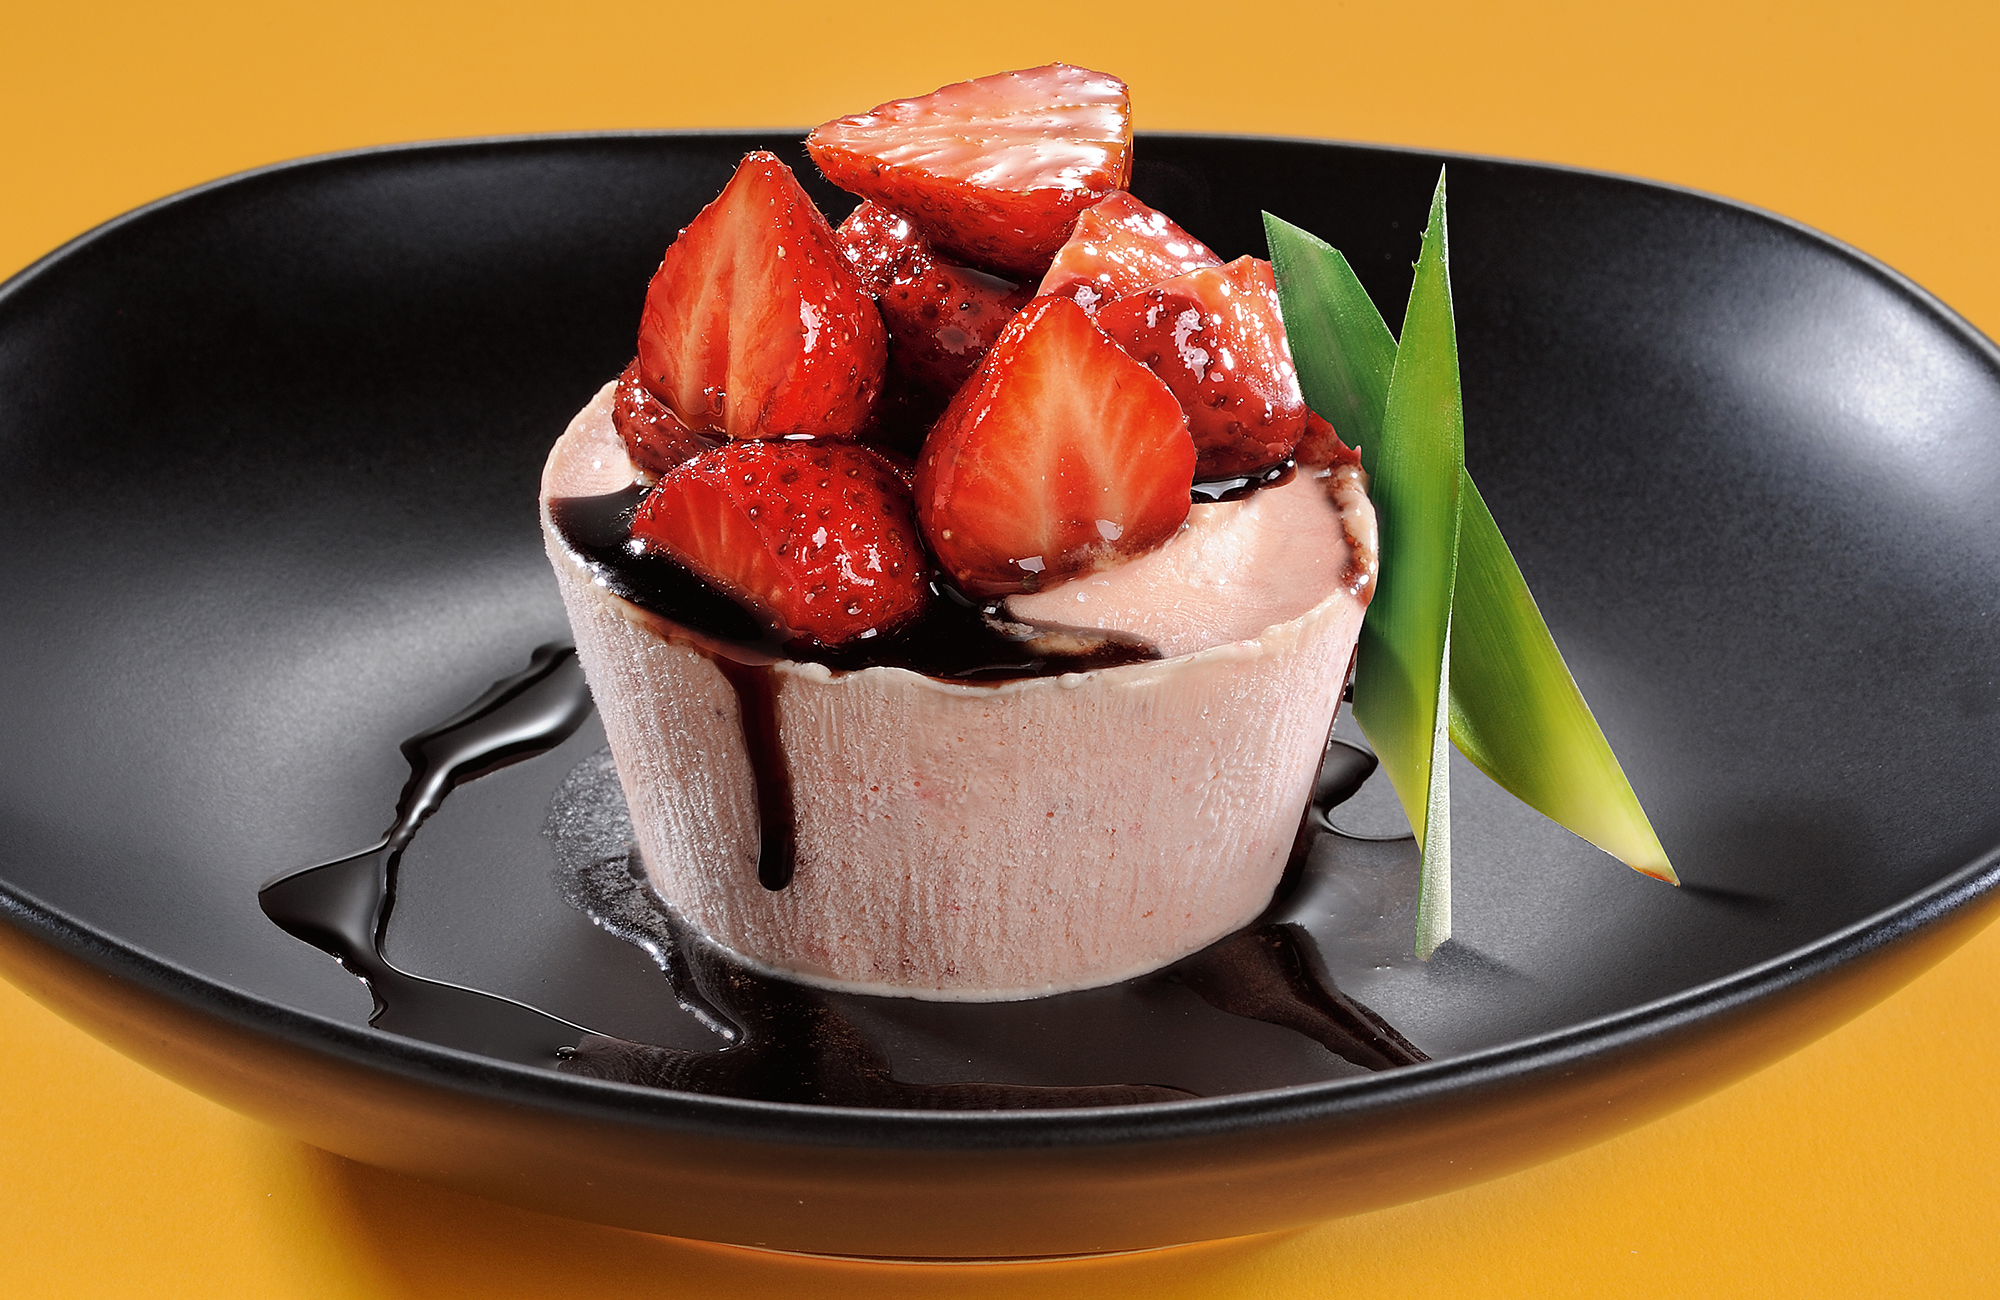 Strawberry semifreddo with Ponti Balsamic Vinegar of Modena P.G.I. Aged 3 years - Ponti